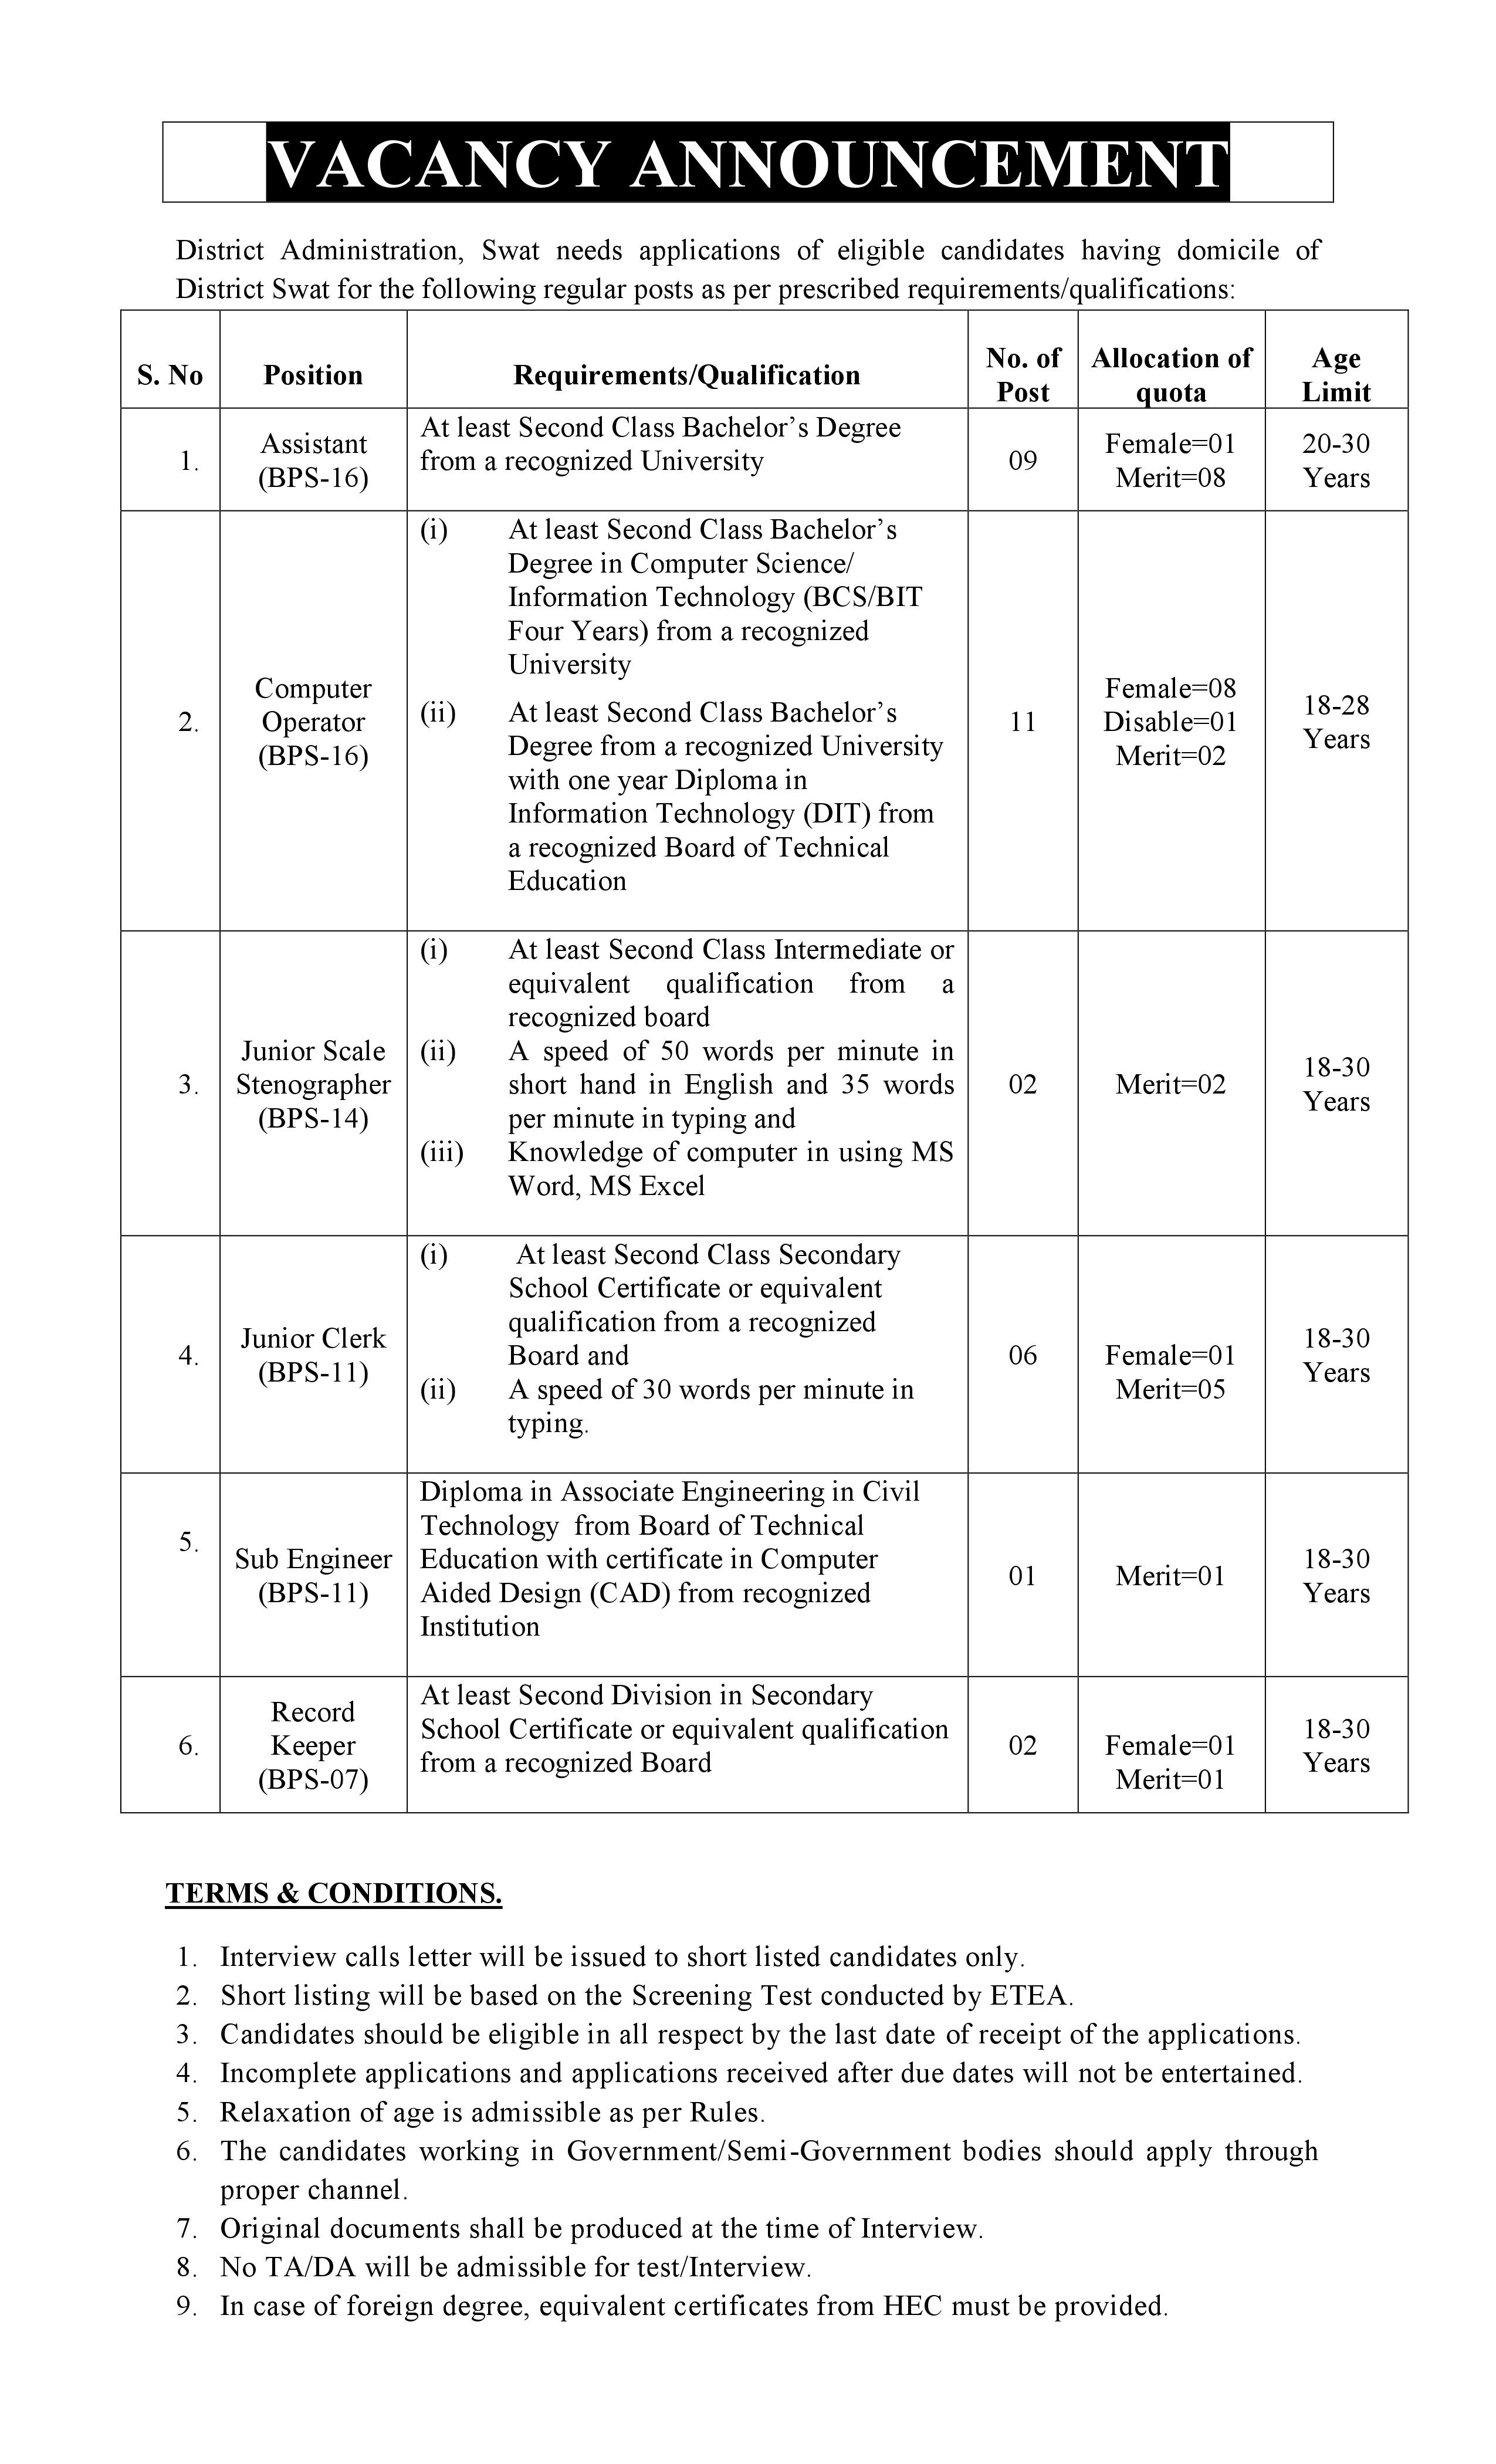 District Administration Swat Jobs 2019